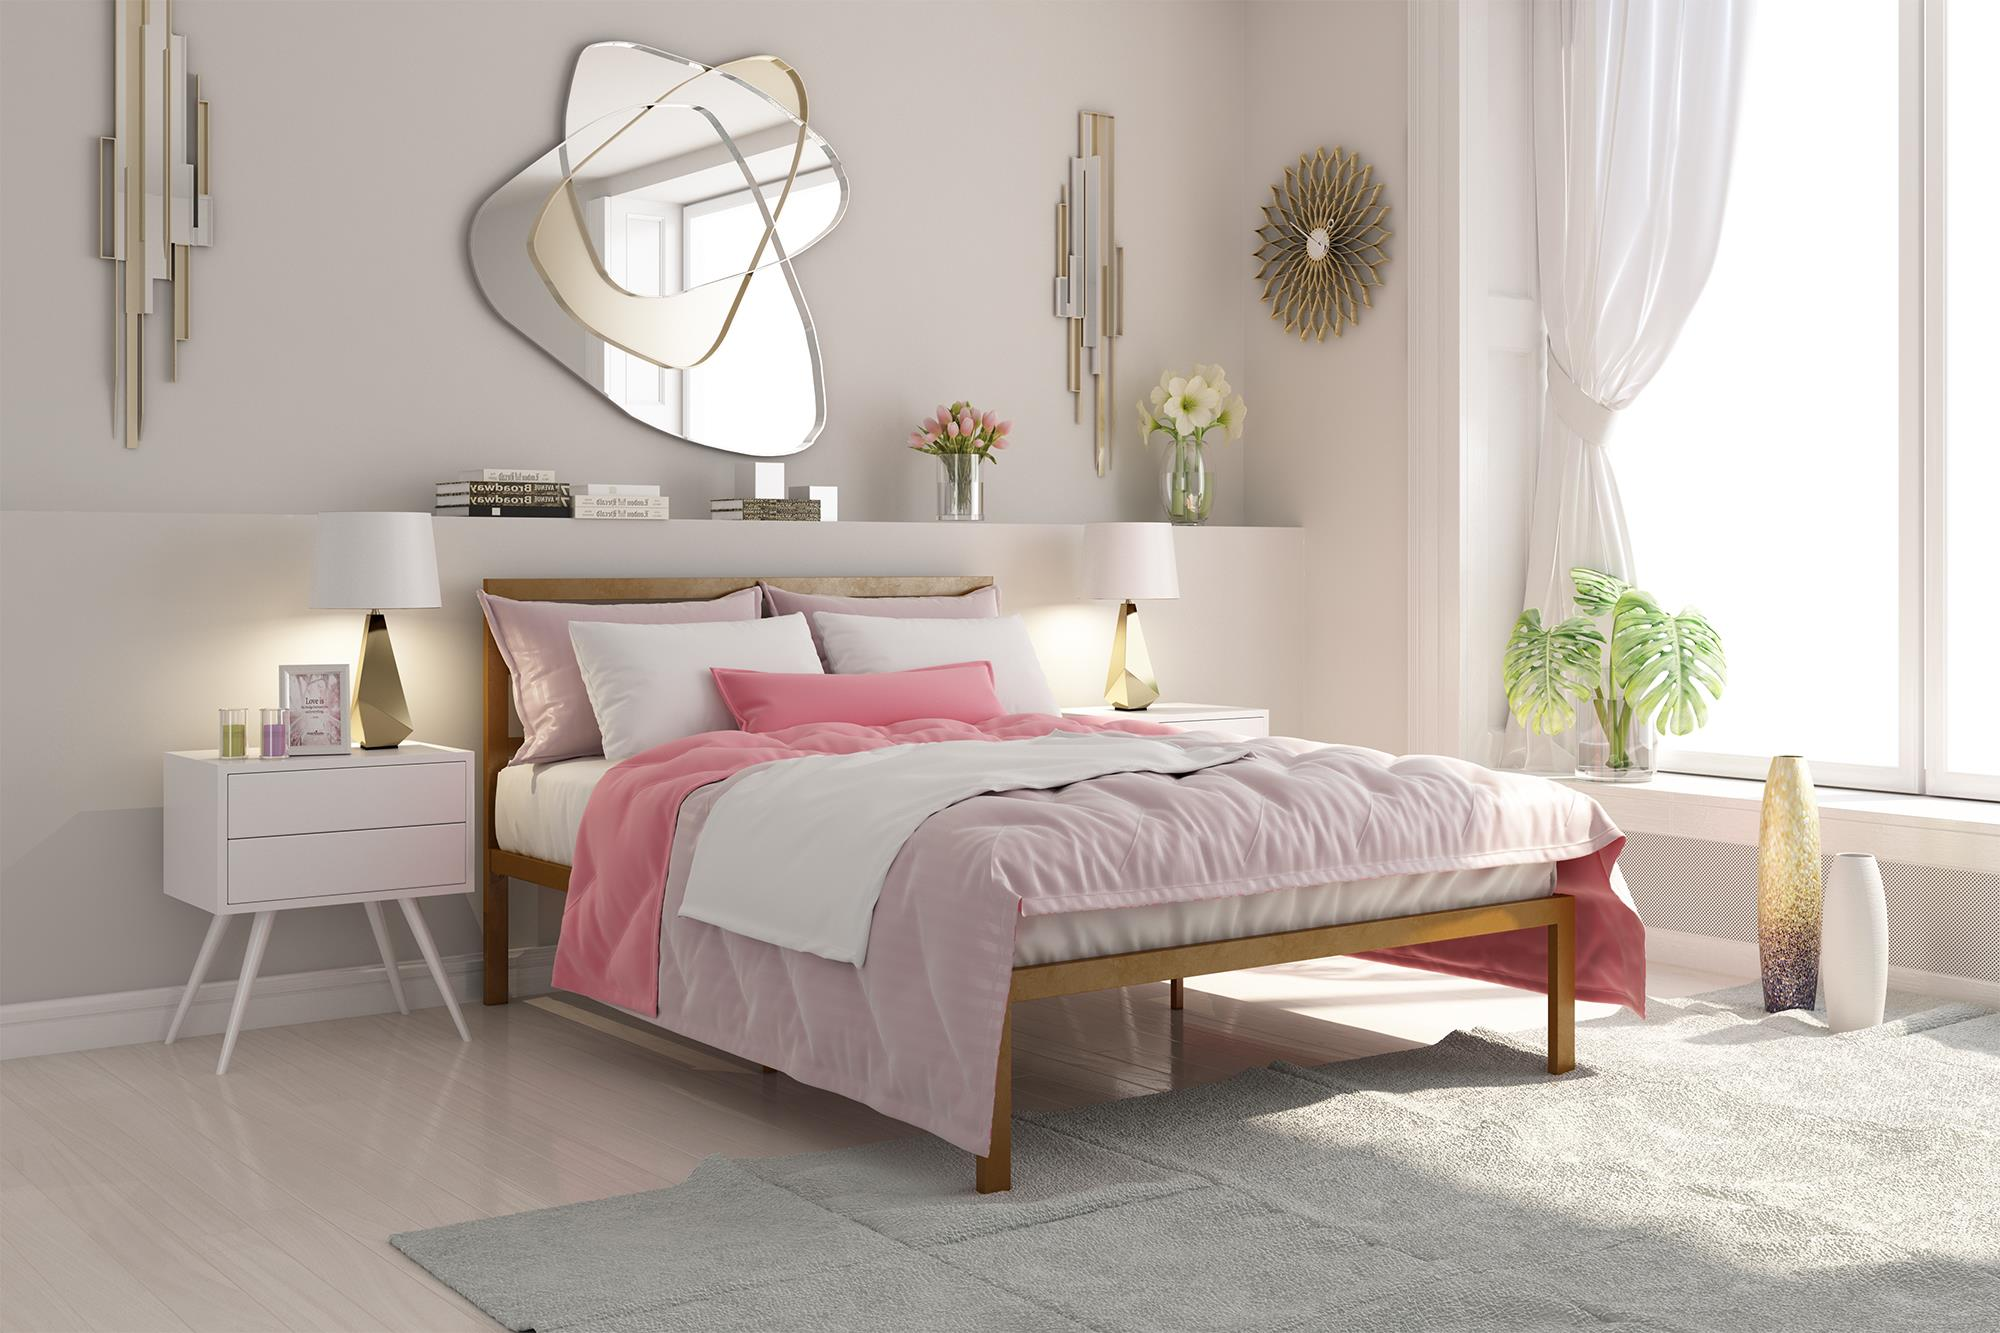 Signature Sleep Premium Modern Platform Bed with Headboard, Metal, Gold, Multiple Sizes by Dorel Home Products